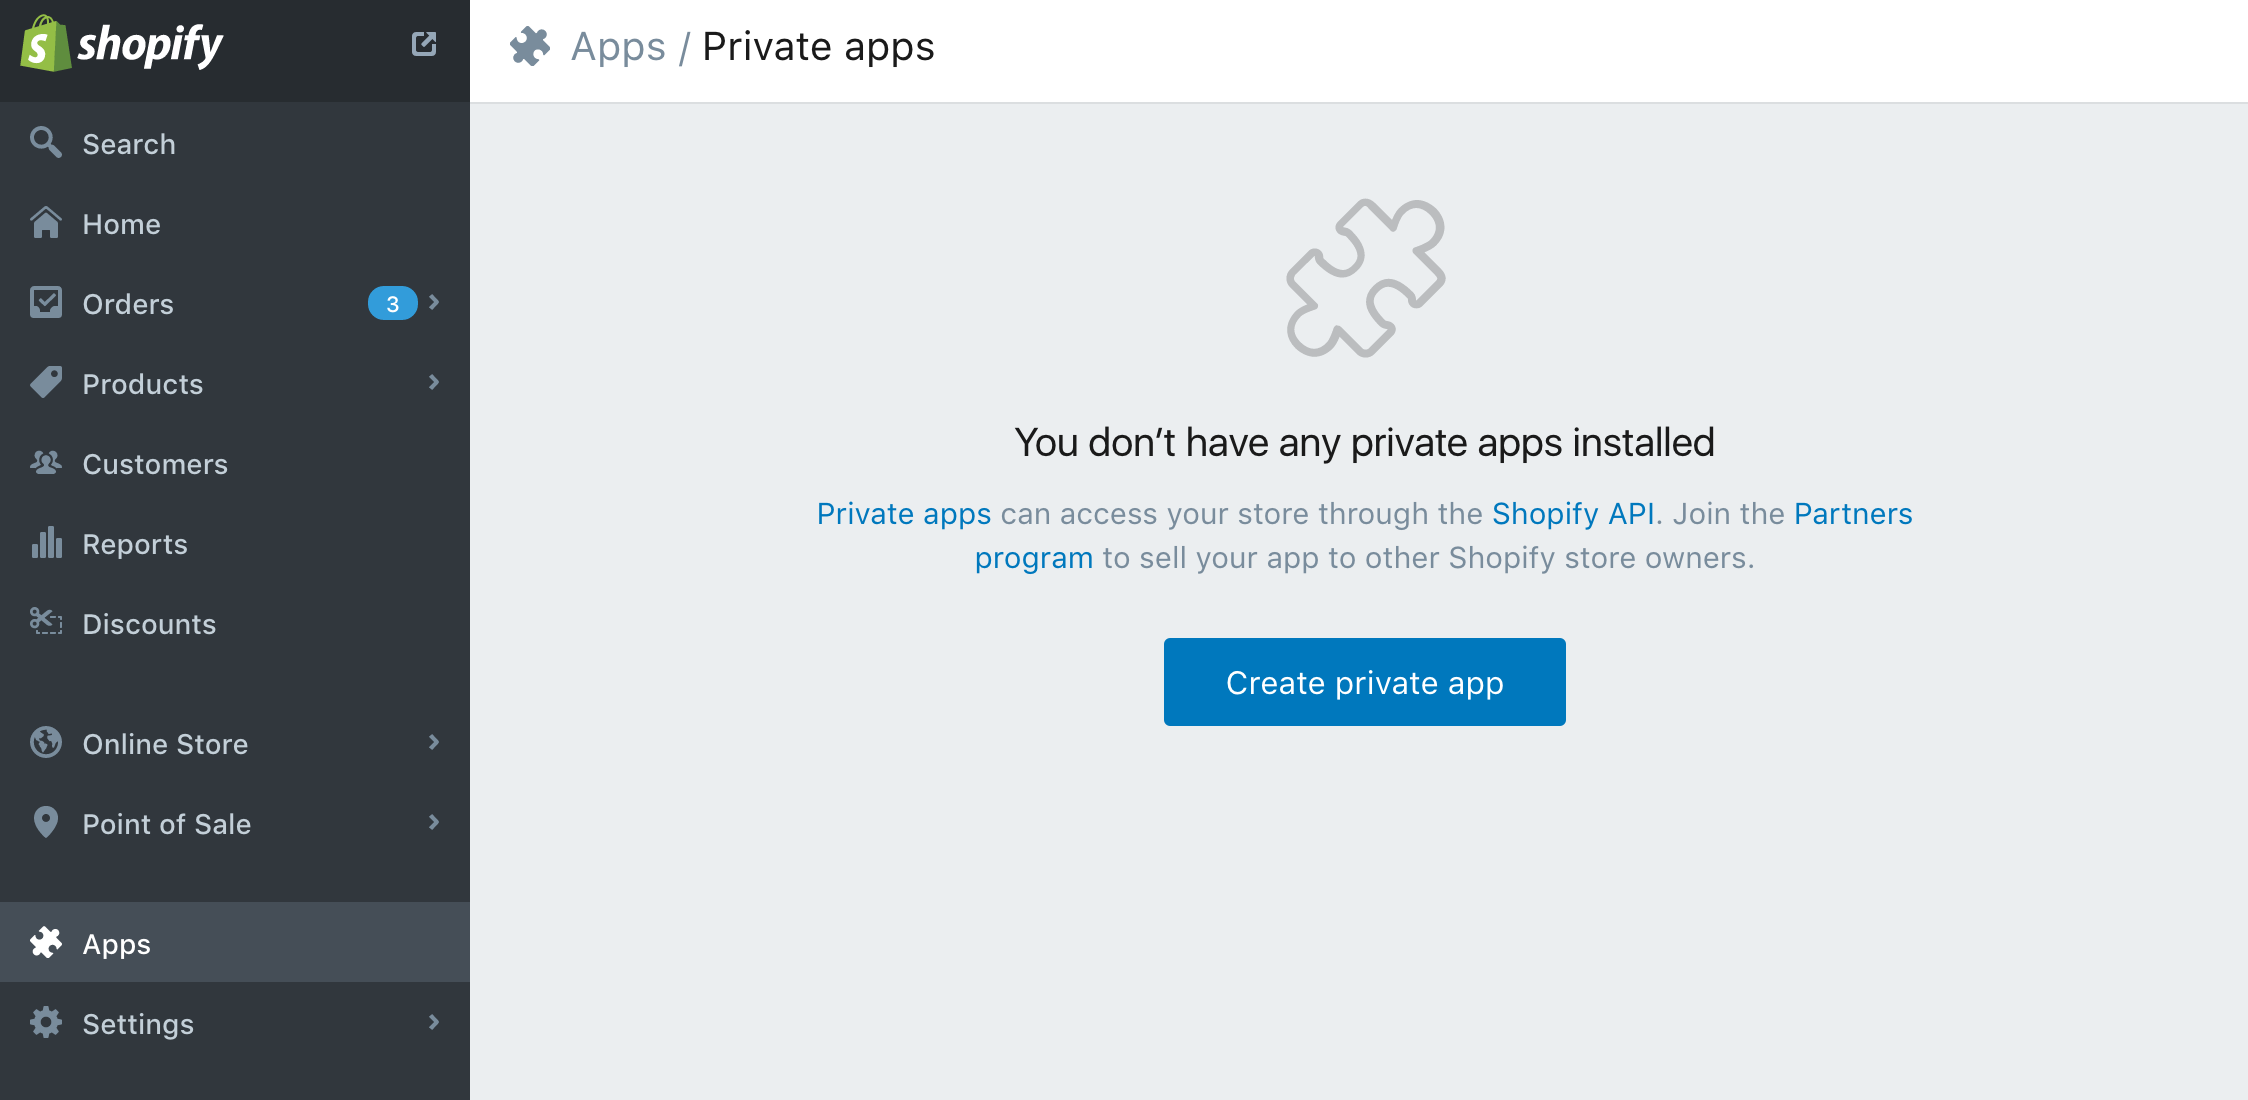 create private app